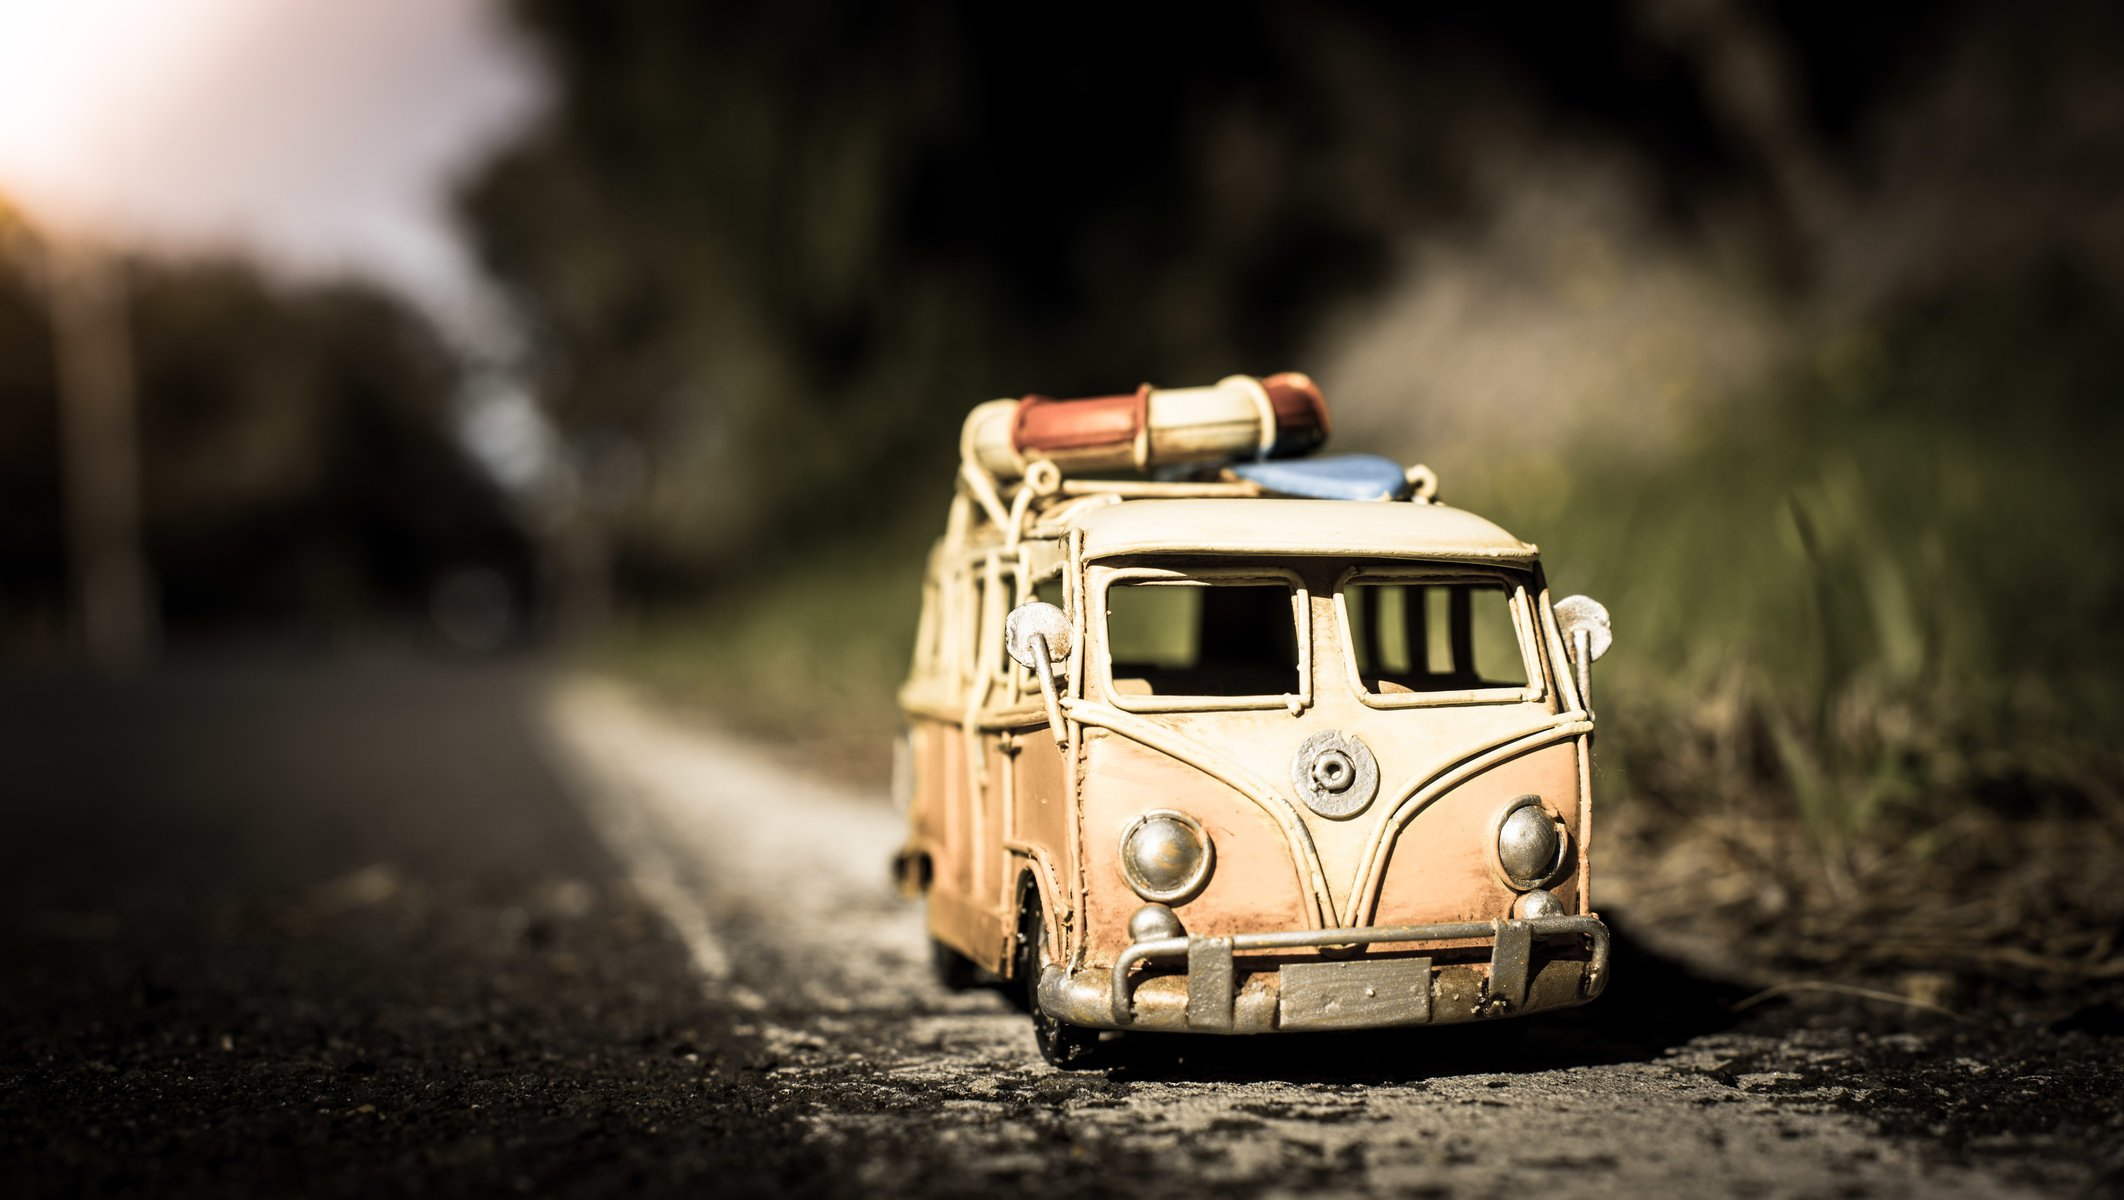 jamie frith photographer photo model machine modelka vw minivan toys road asphalt close up shooting